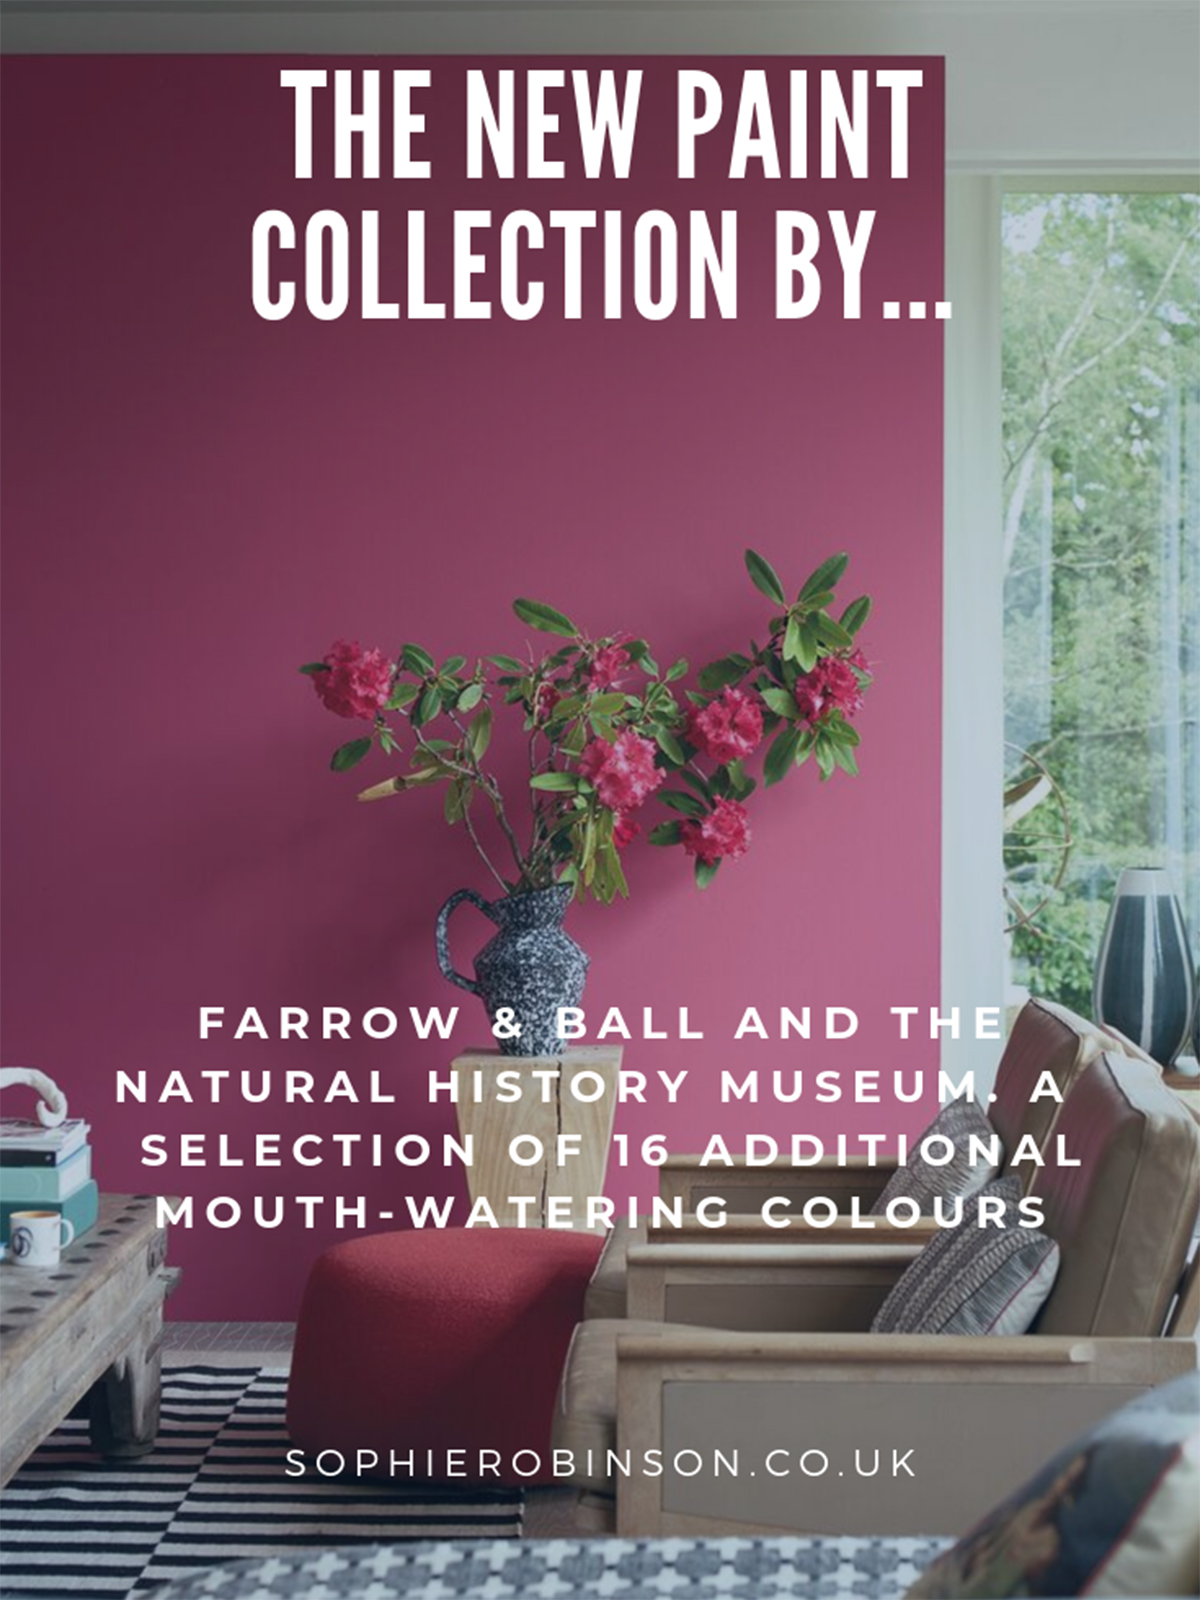 New paint collection from Farrow & Ball and The Natural History museum. Find out more with Sophie Robinson here. #farrowandball #paintcollection #sophierobinson